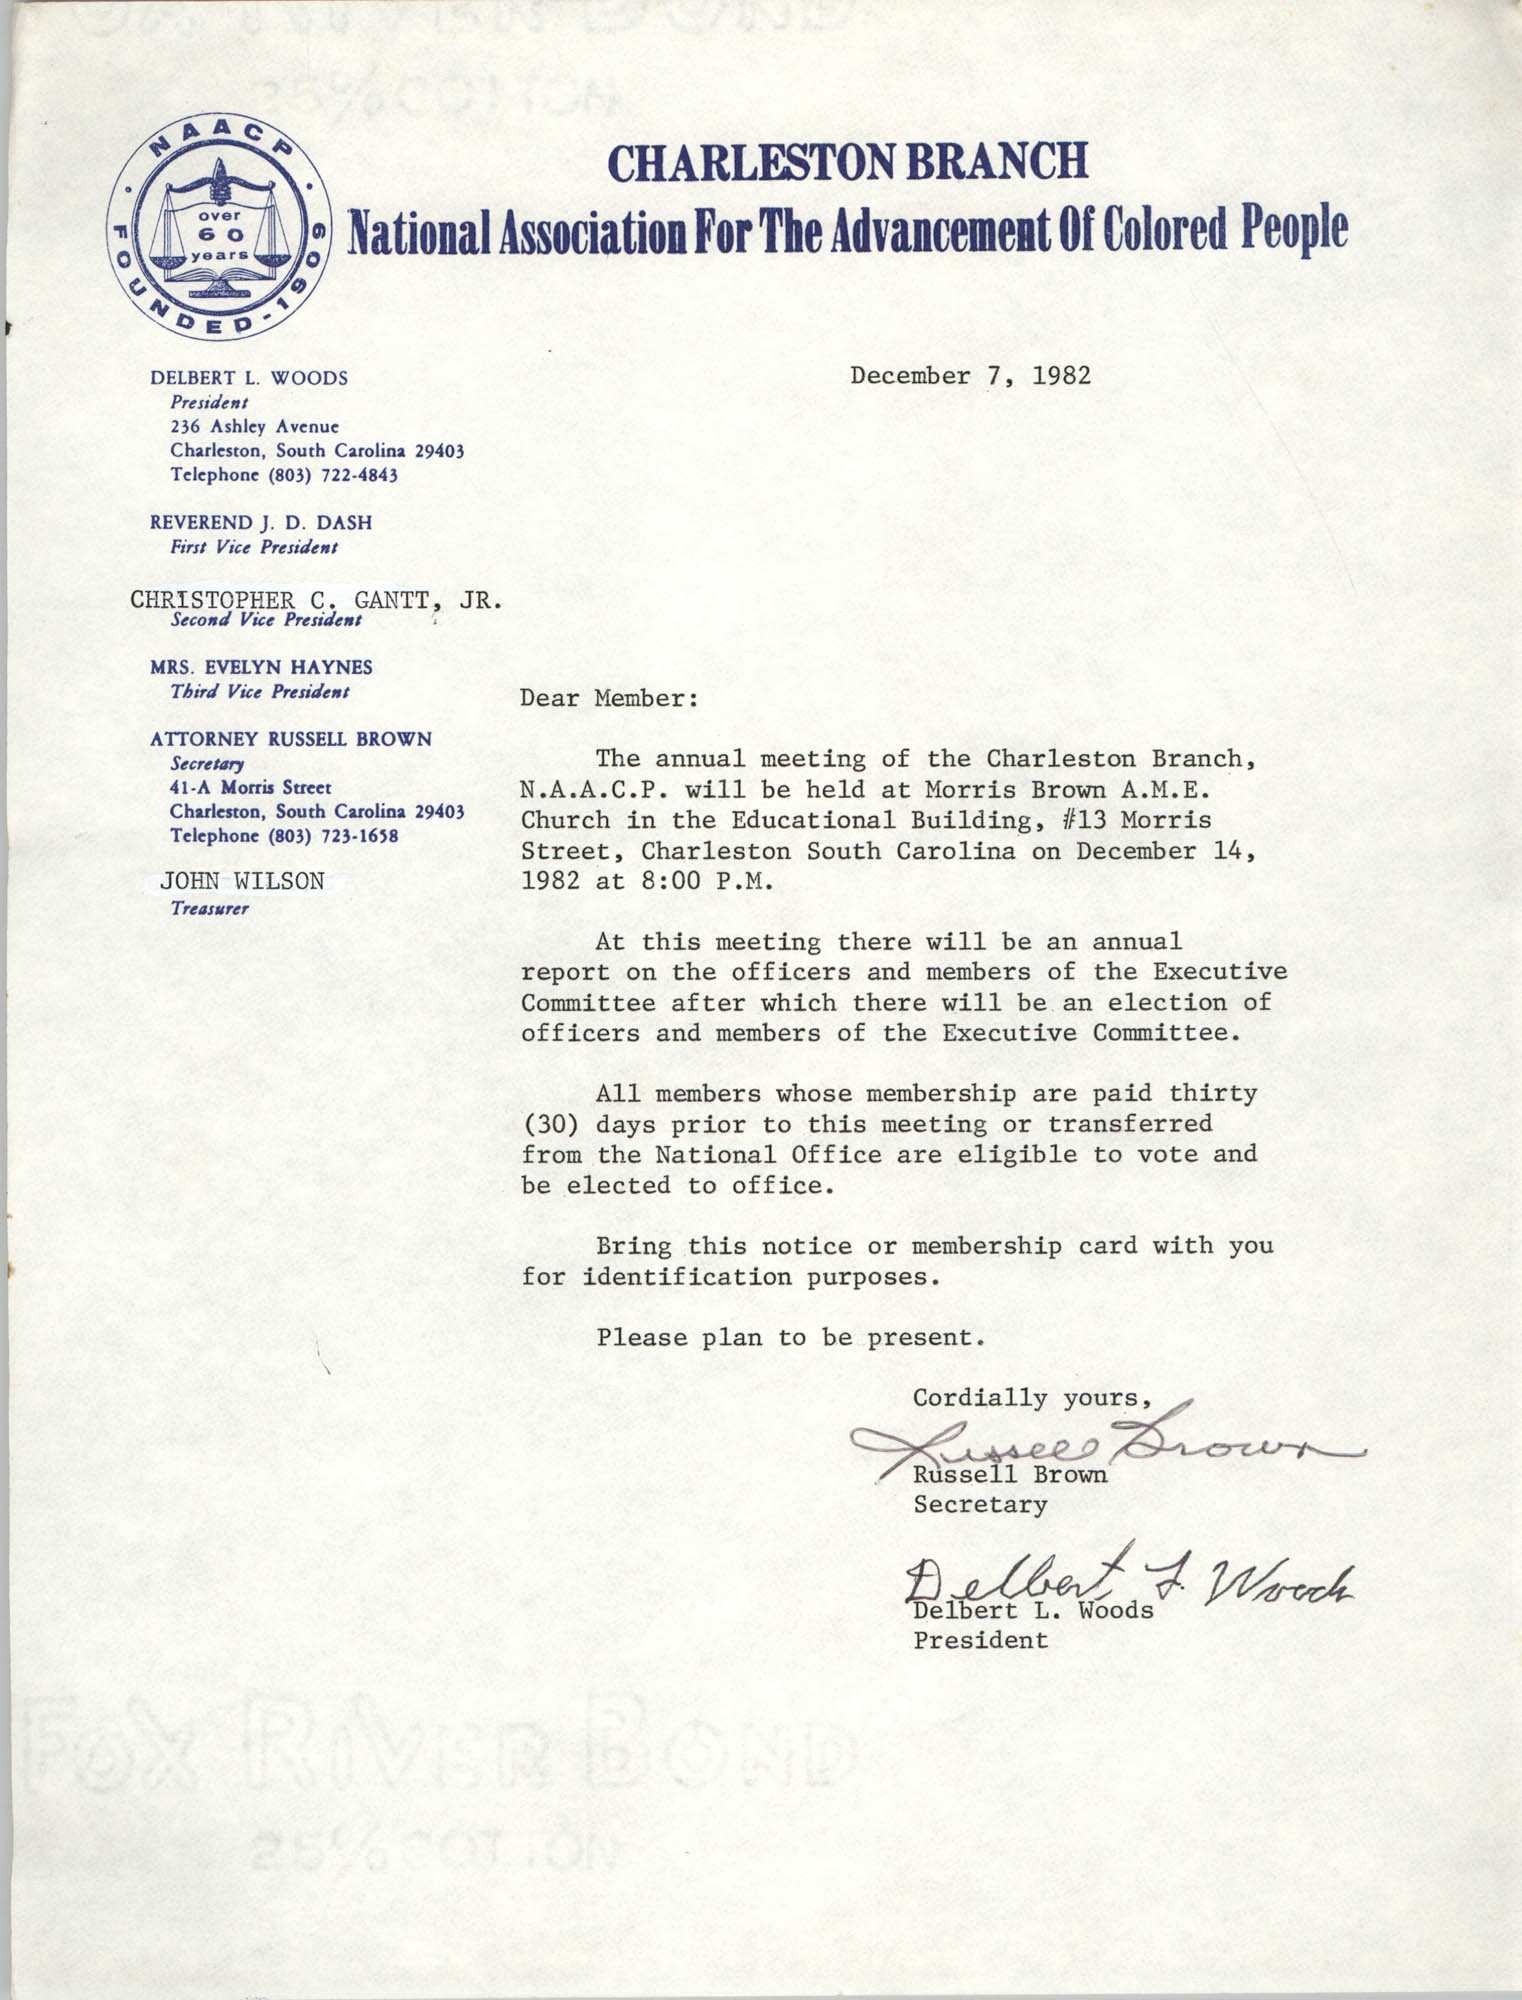 Letter from Russell Brown and Delbert L. Woods to Charleston Branch of the NAACP Members, December 7, 1982